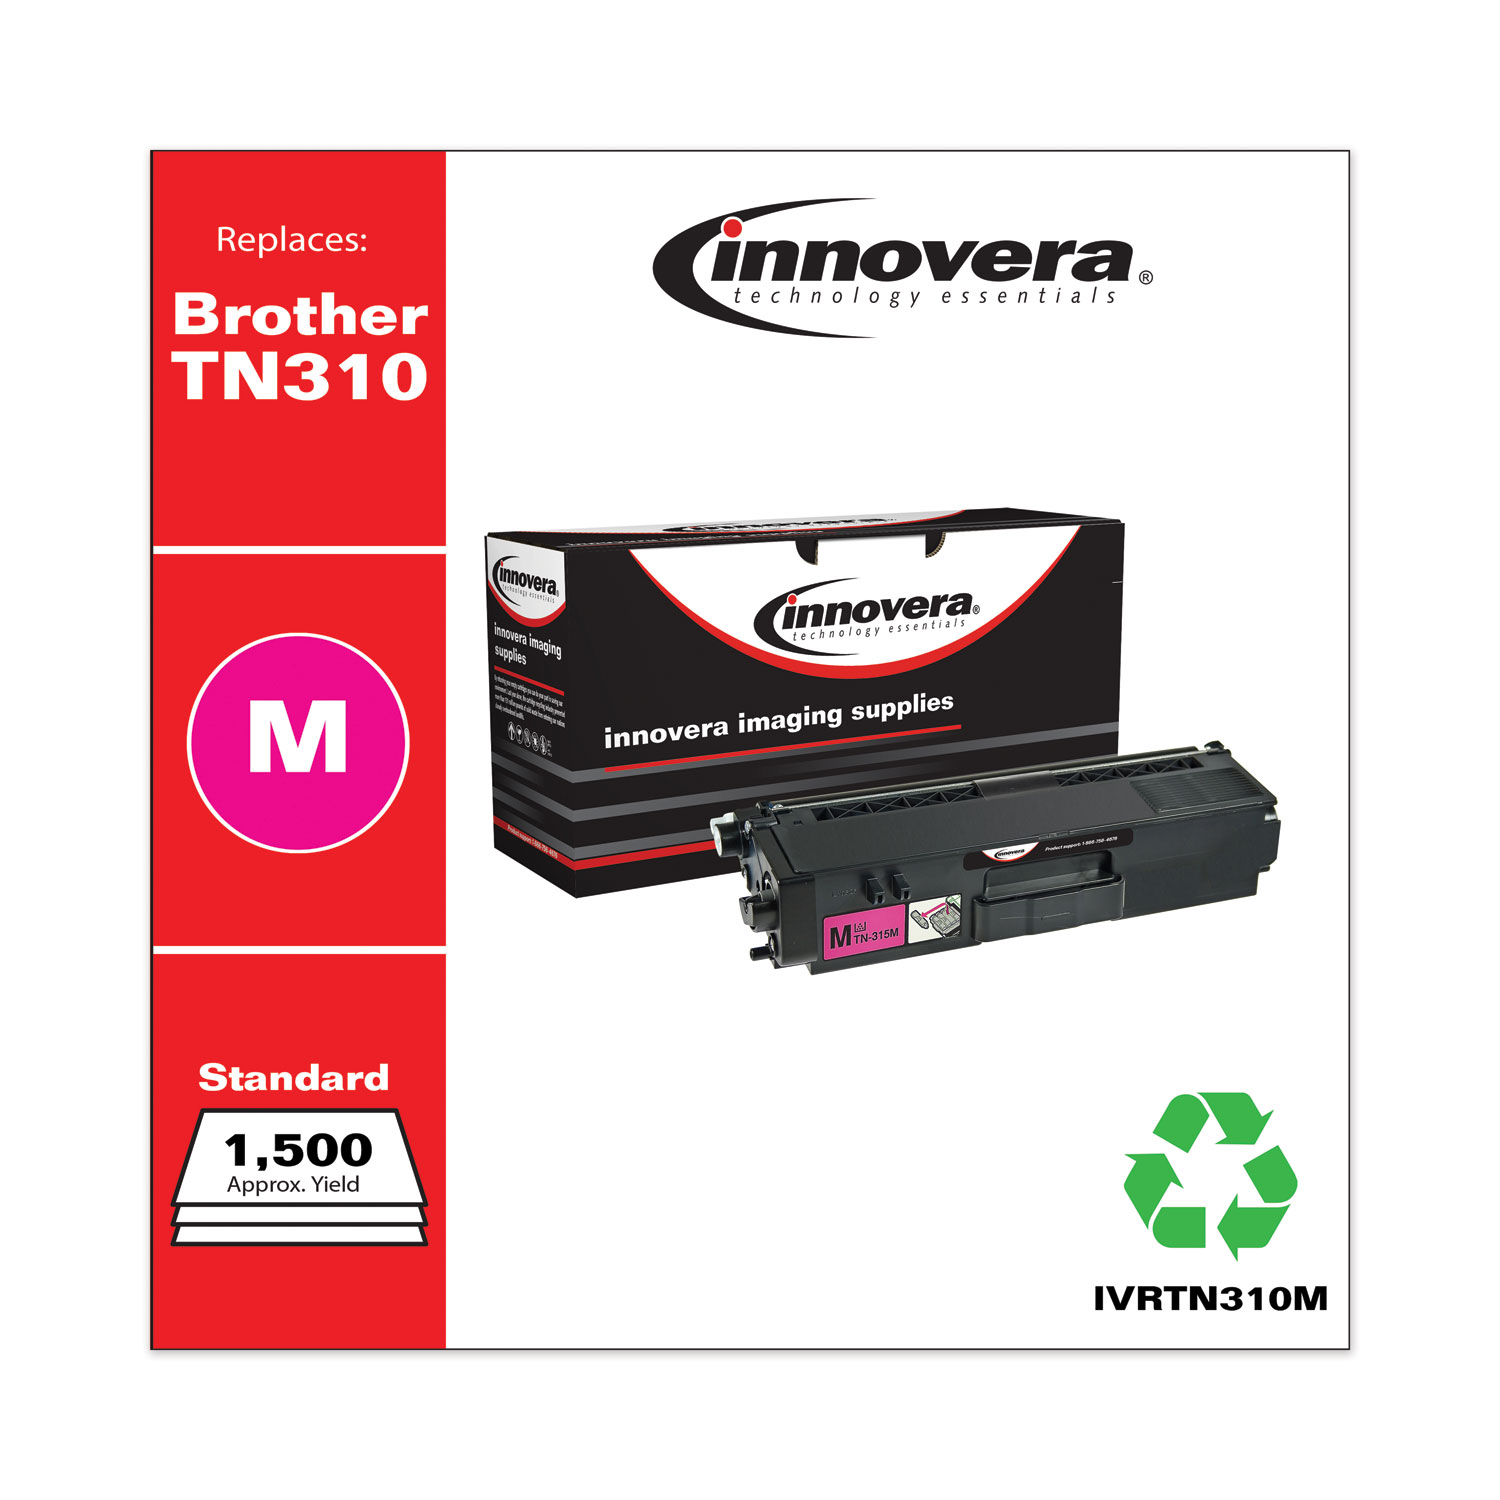 Remanufactured Magenta Toner, Replacement for Brother TN310M, 1,500 Page-Yield IVRTN310M